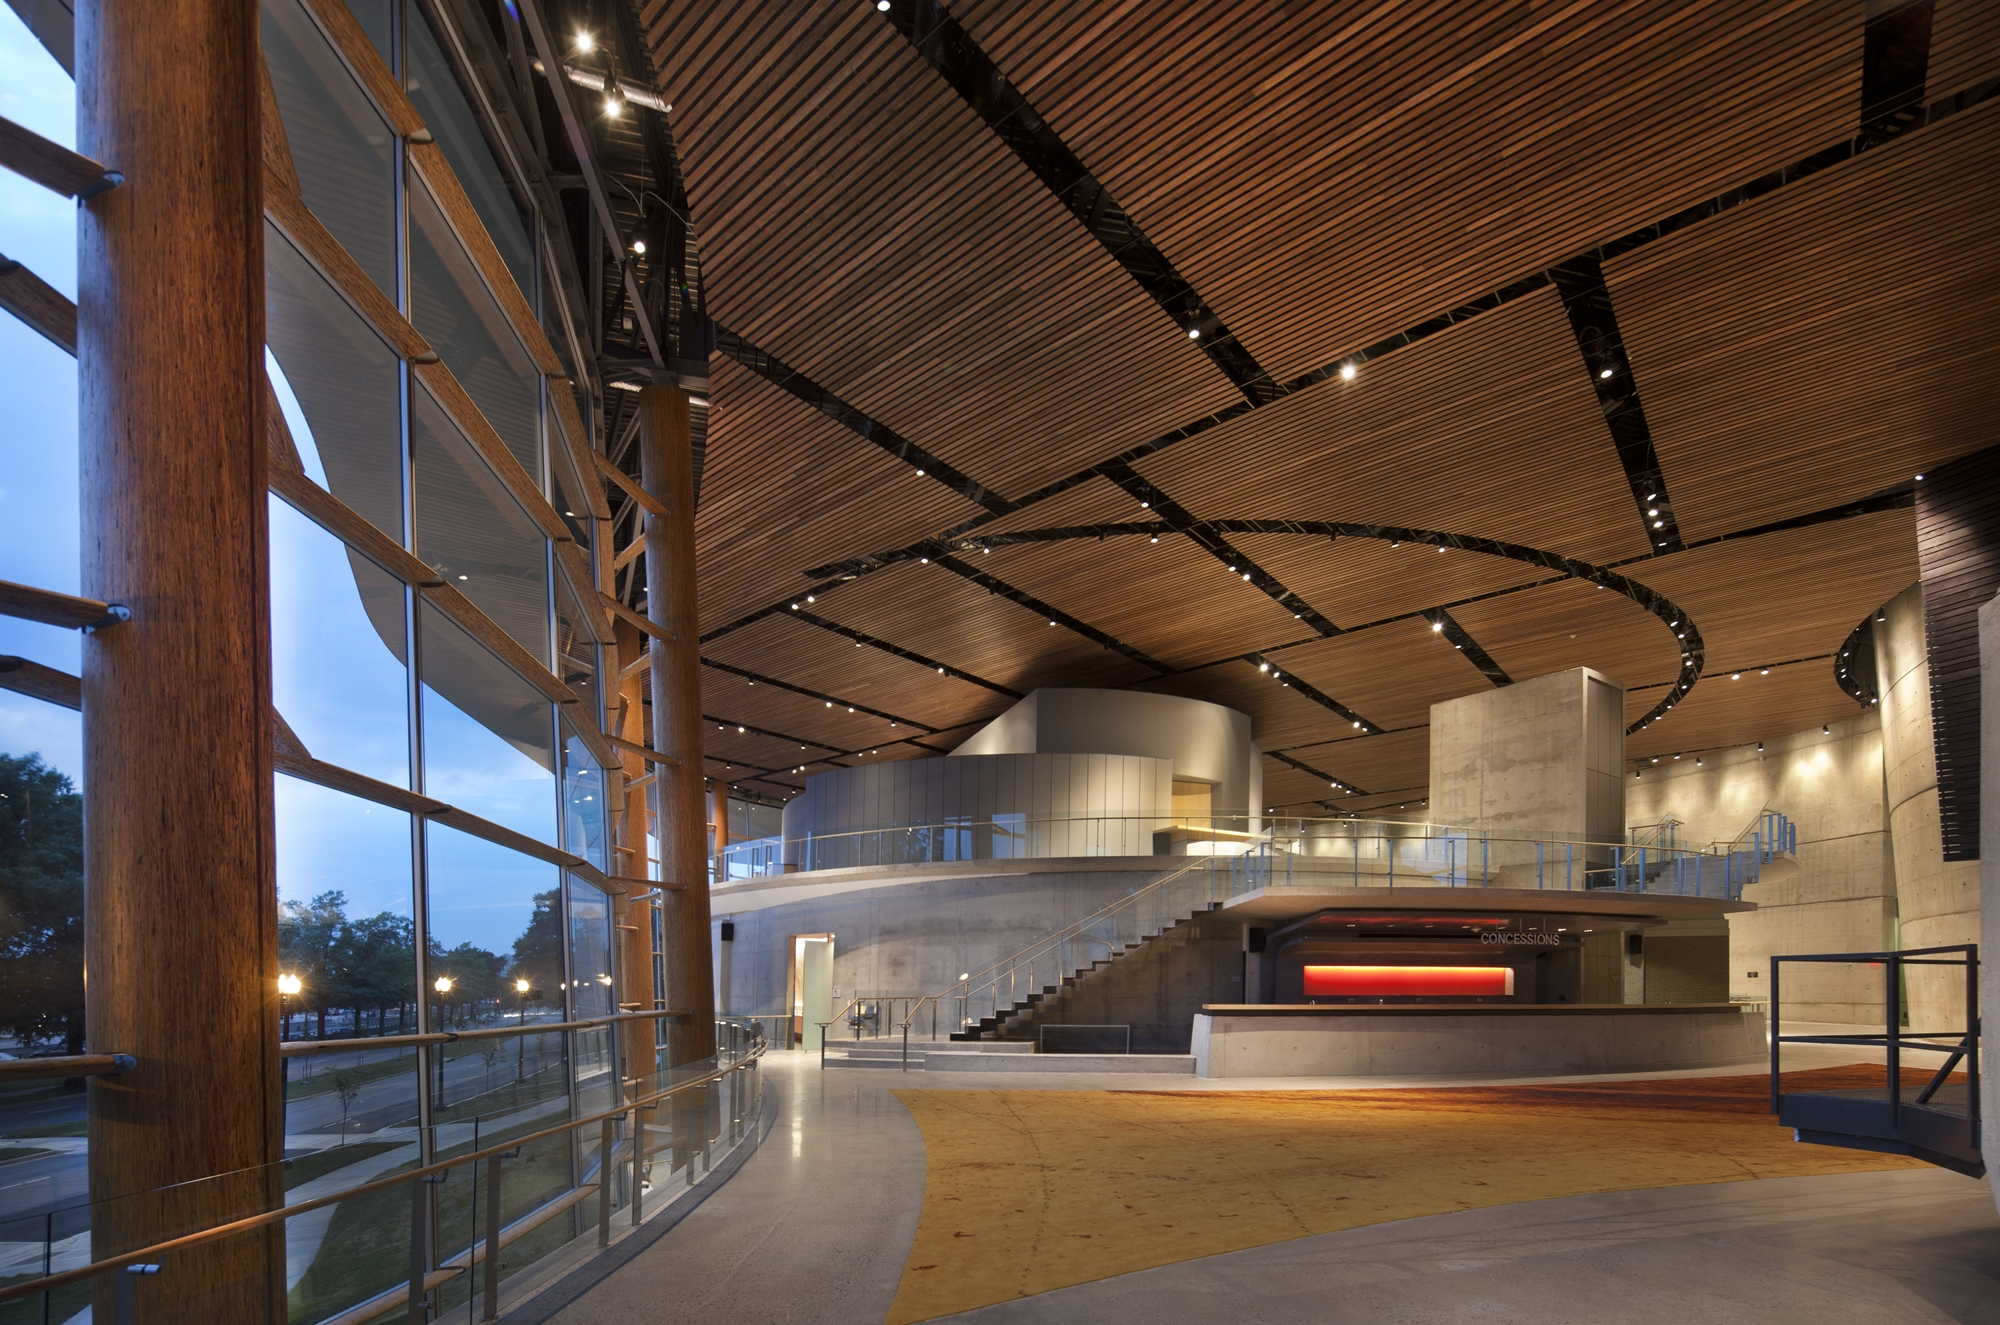 A Sound Decision: Wood brings acoustic value to structures